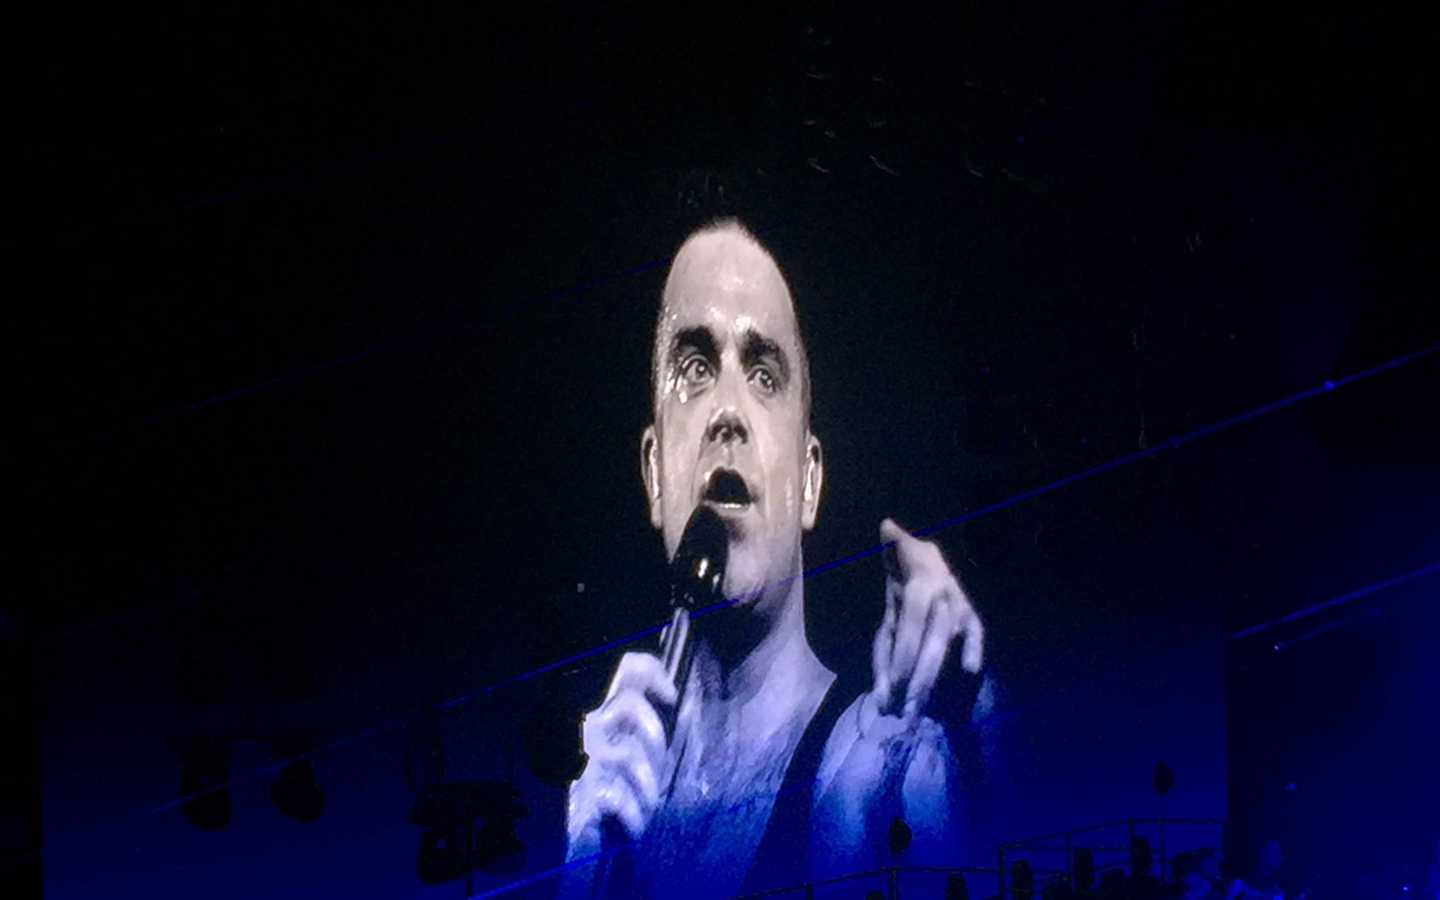 Perth Arena. Robbie Williams. Yes, he's Still Perth's Son.